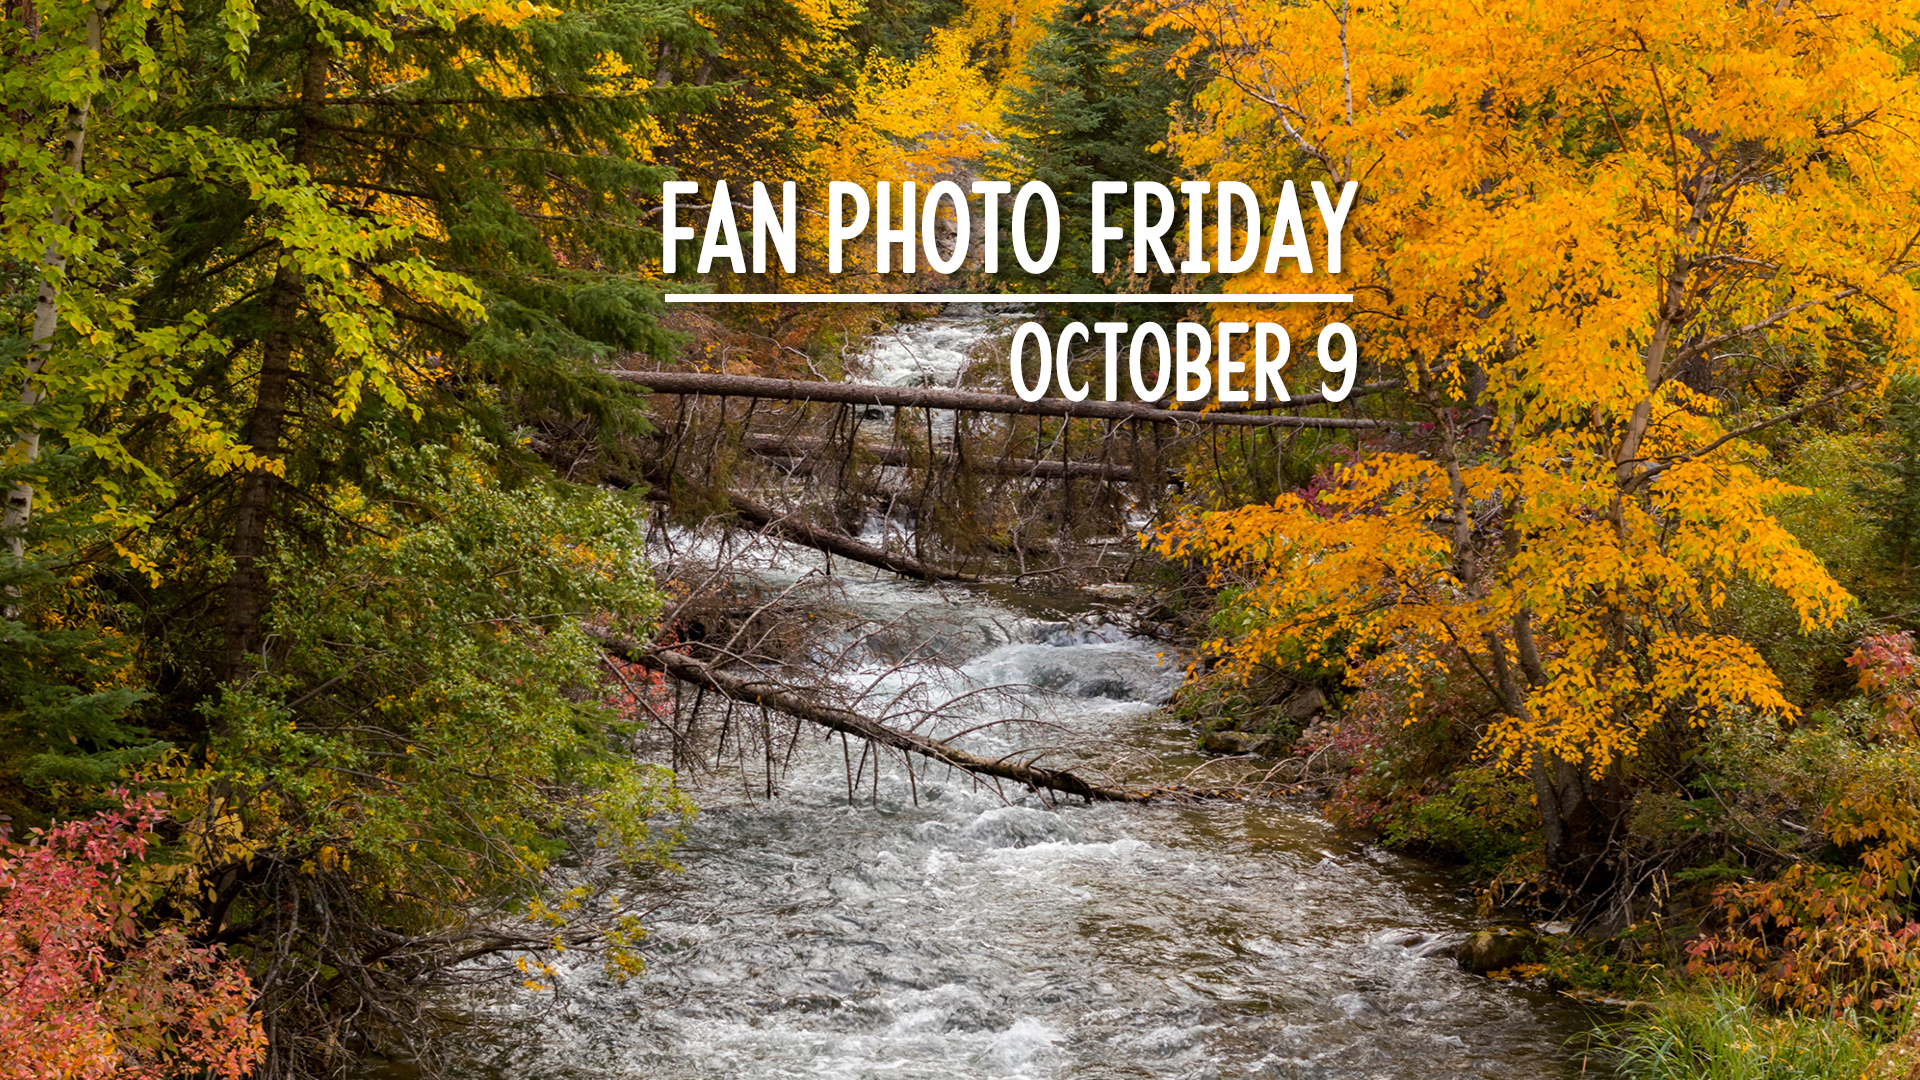 Fan Photo Friday | October 9, 2020